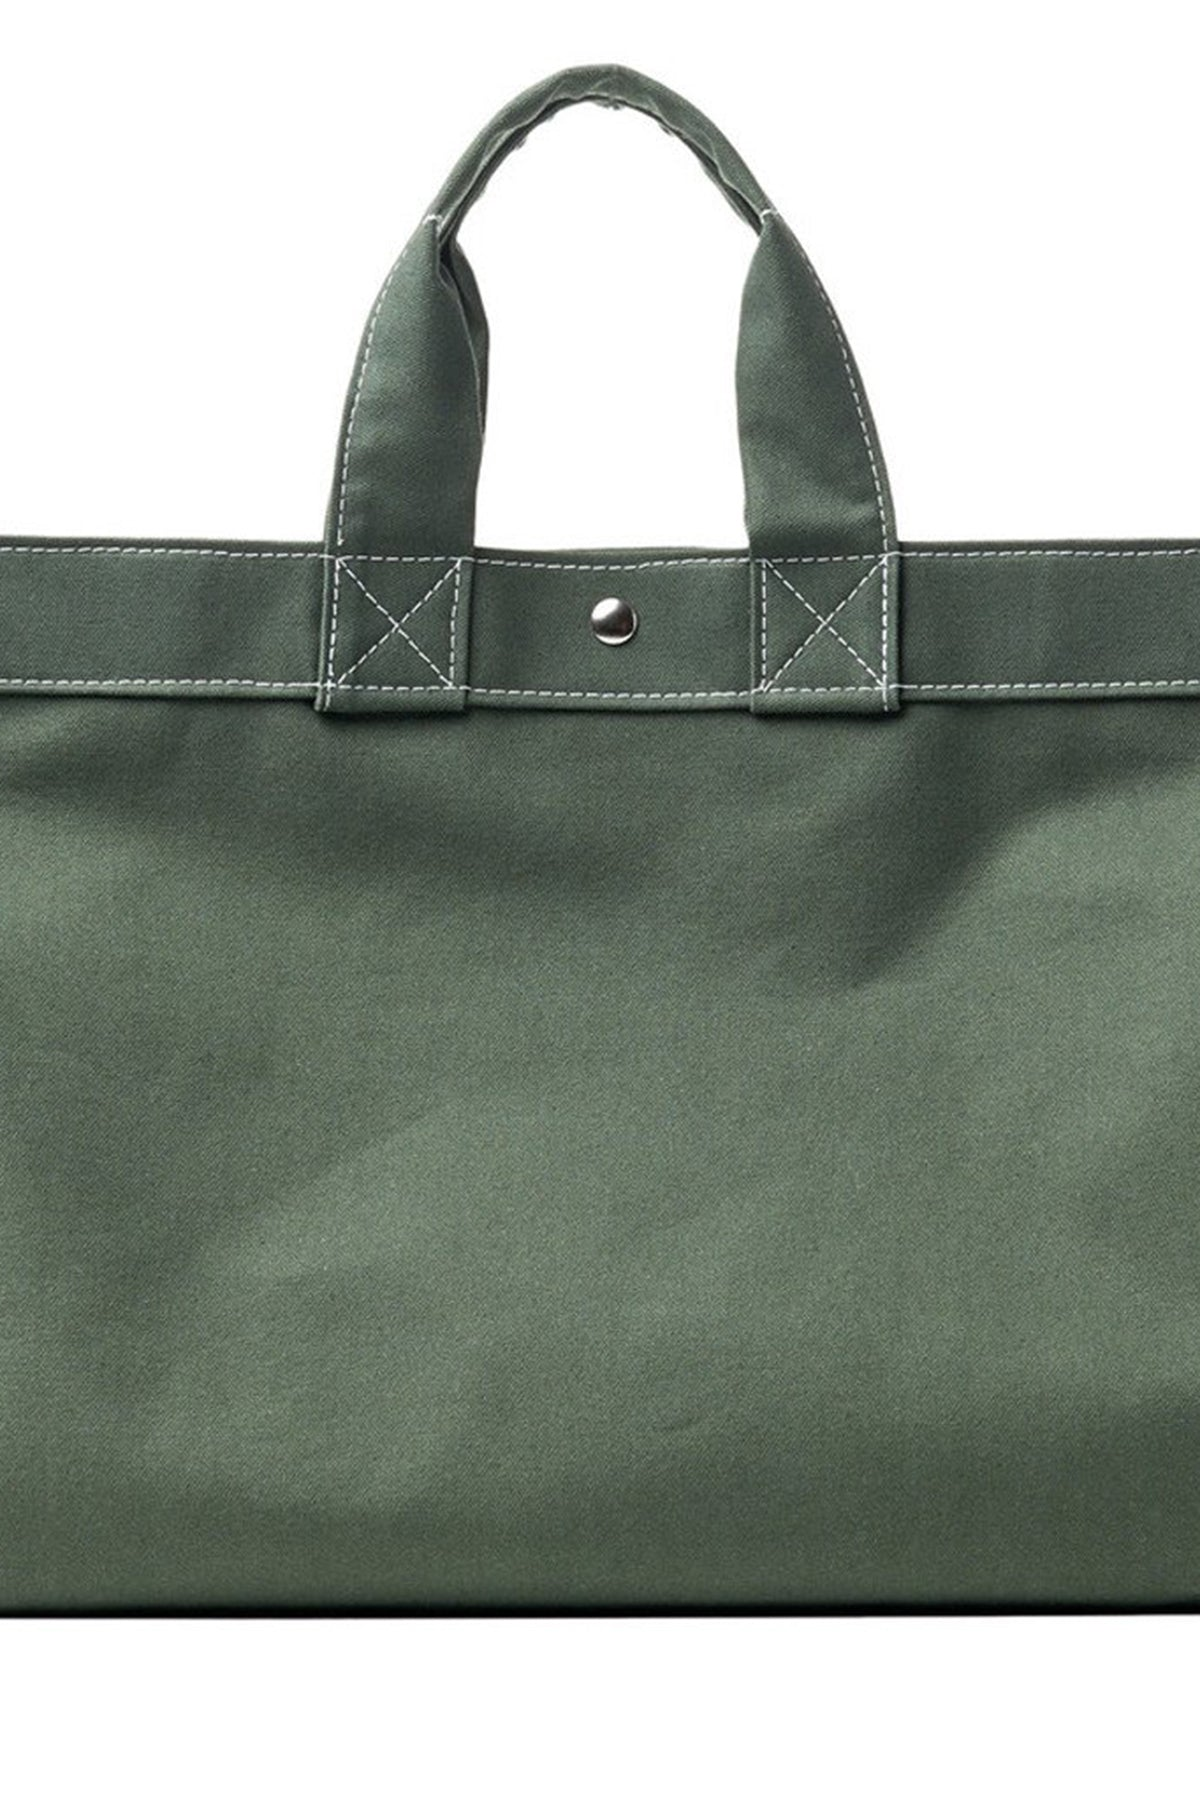 CLASSIC FIELD BAG BY UTILITY CANVAS